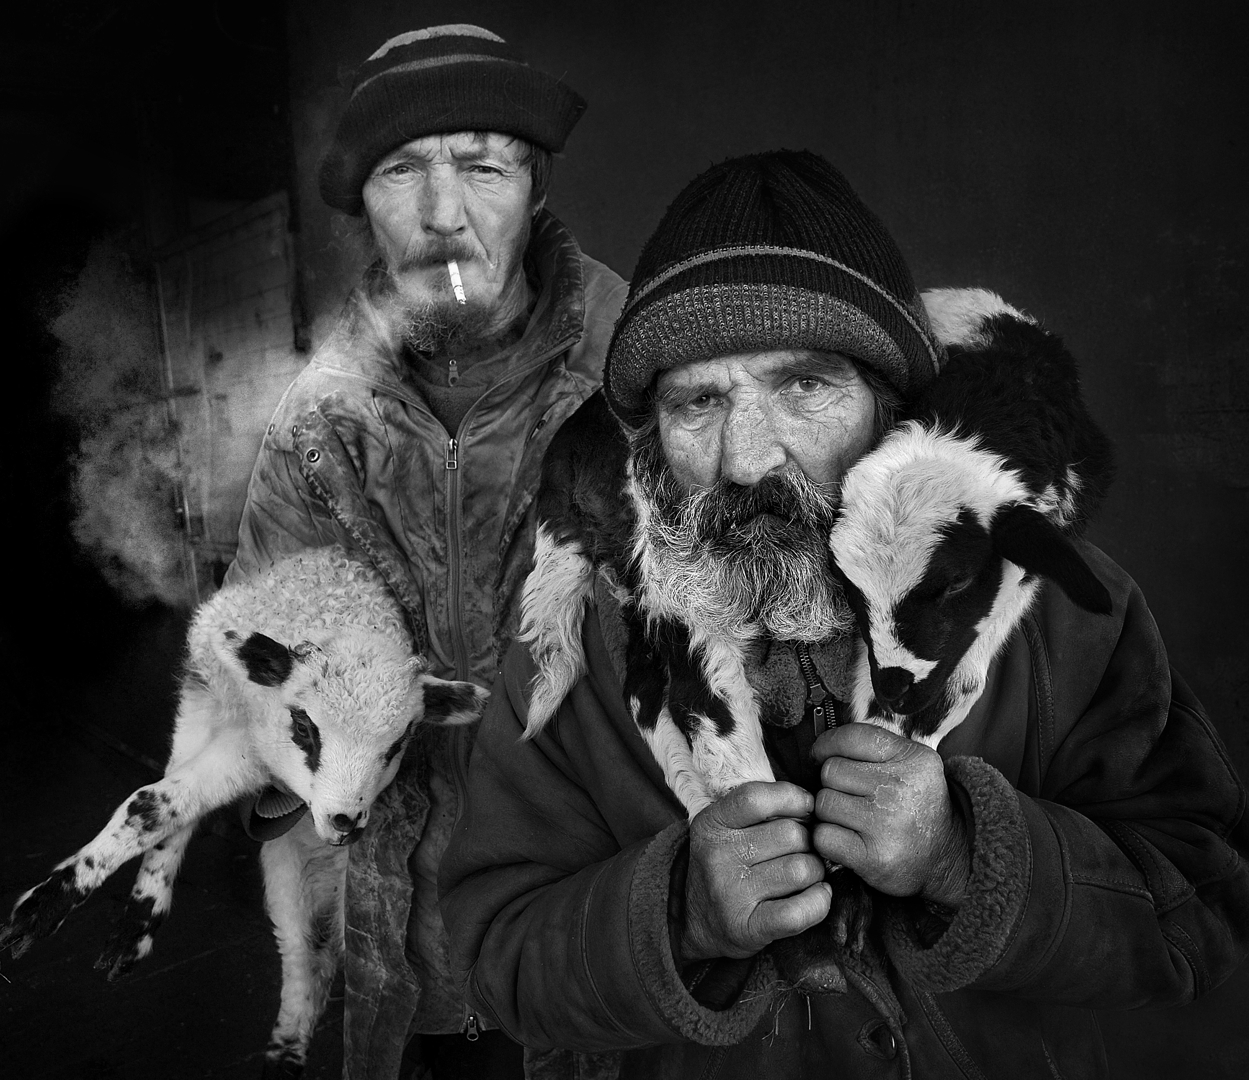 All About Photo Presents Shepherds From Transylvania image